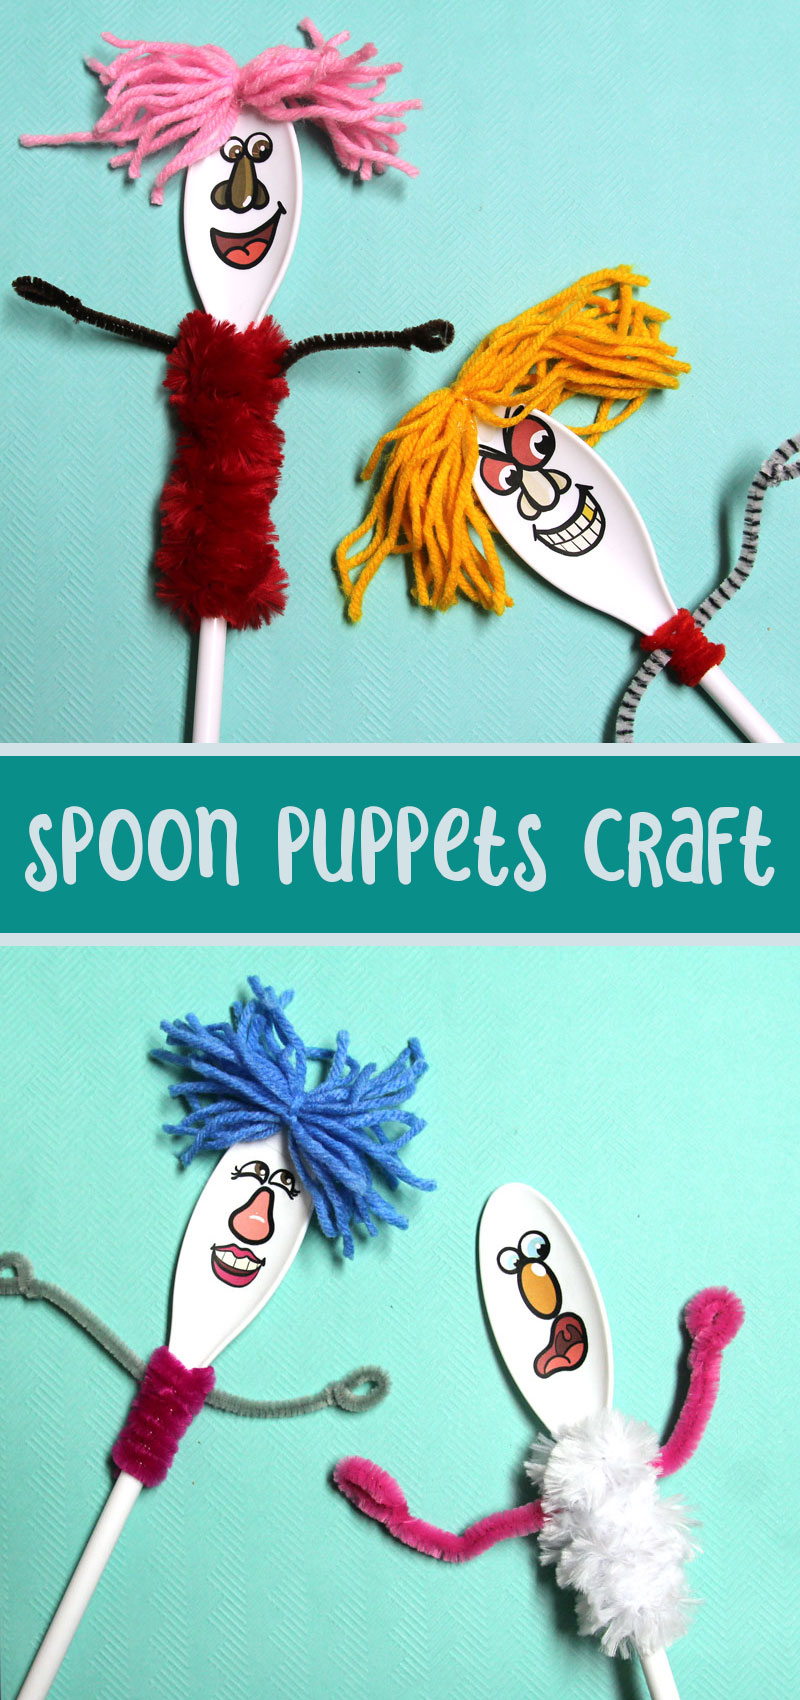 How to make spoon puppets final collage